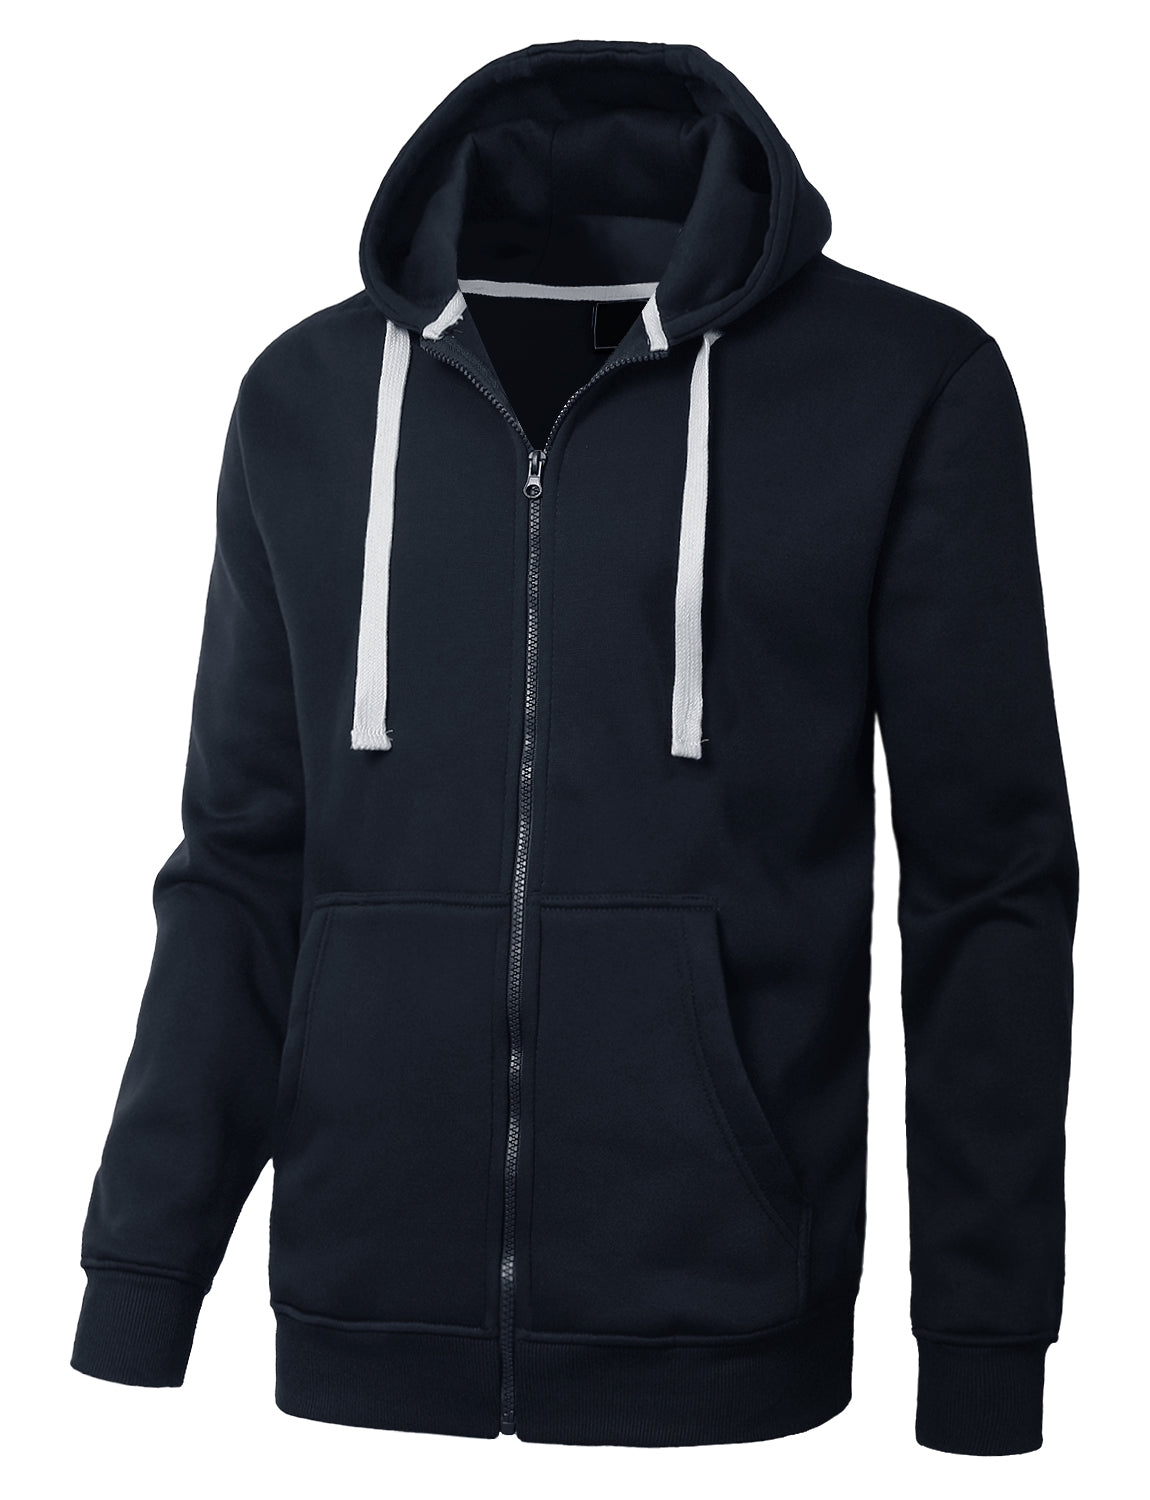 NAVY Basic Zip-Up Fleece Hoodie Jacket - URBANCREWS